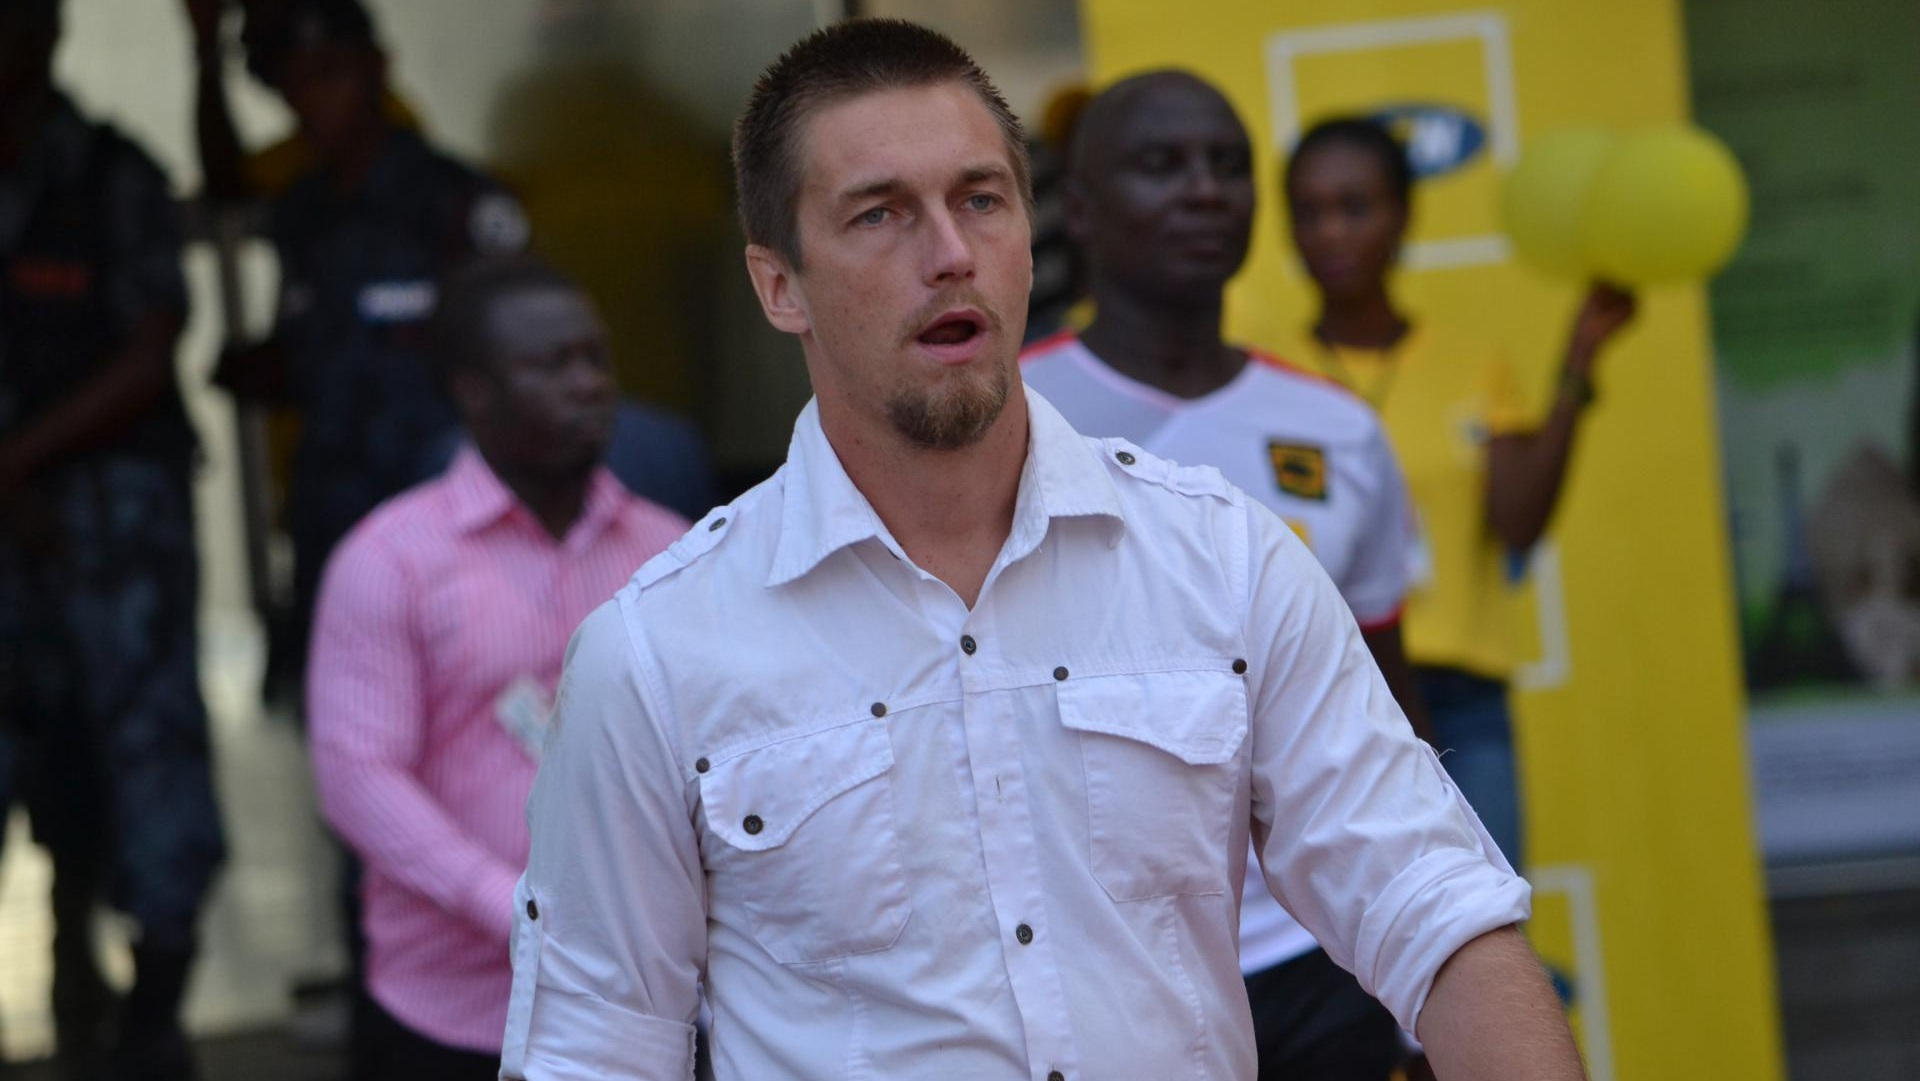 Former Medeama Coach Tom Strand to arrive in Ghana for Hearts job